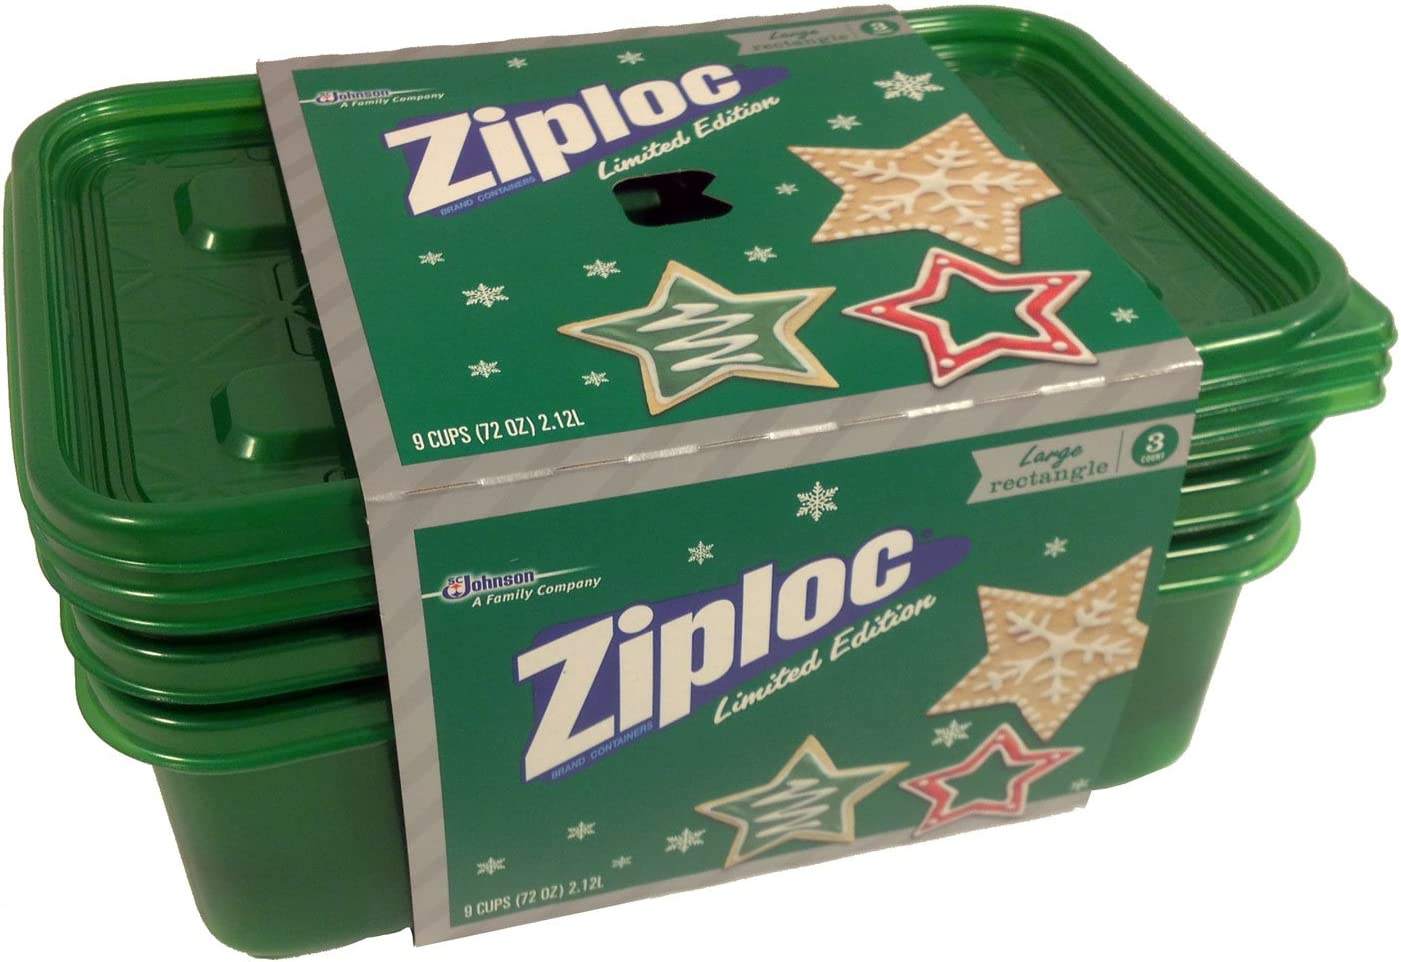 Ziploc Limited Edition Holiday Colored Storage Containers with Lids (Large Rectangle, Green)